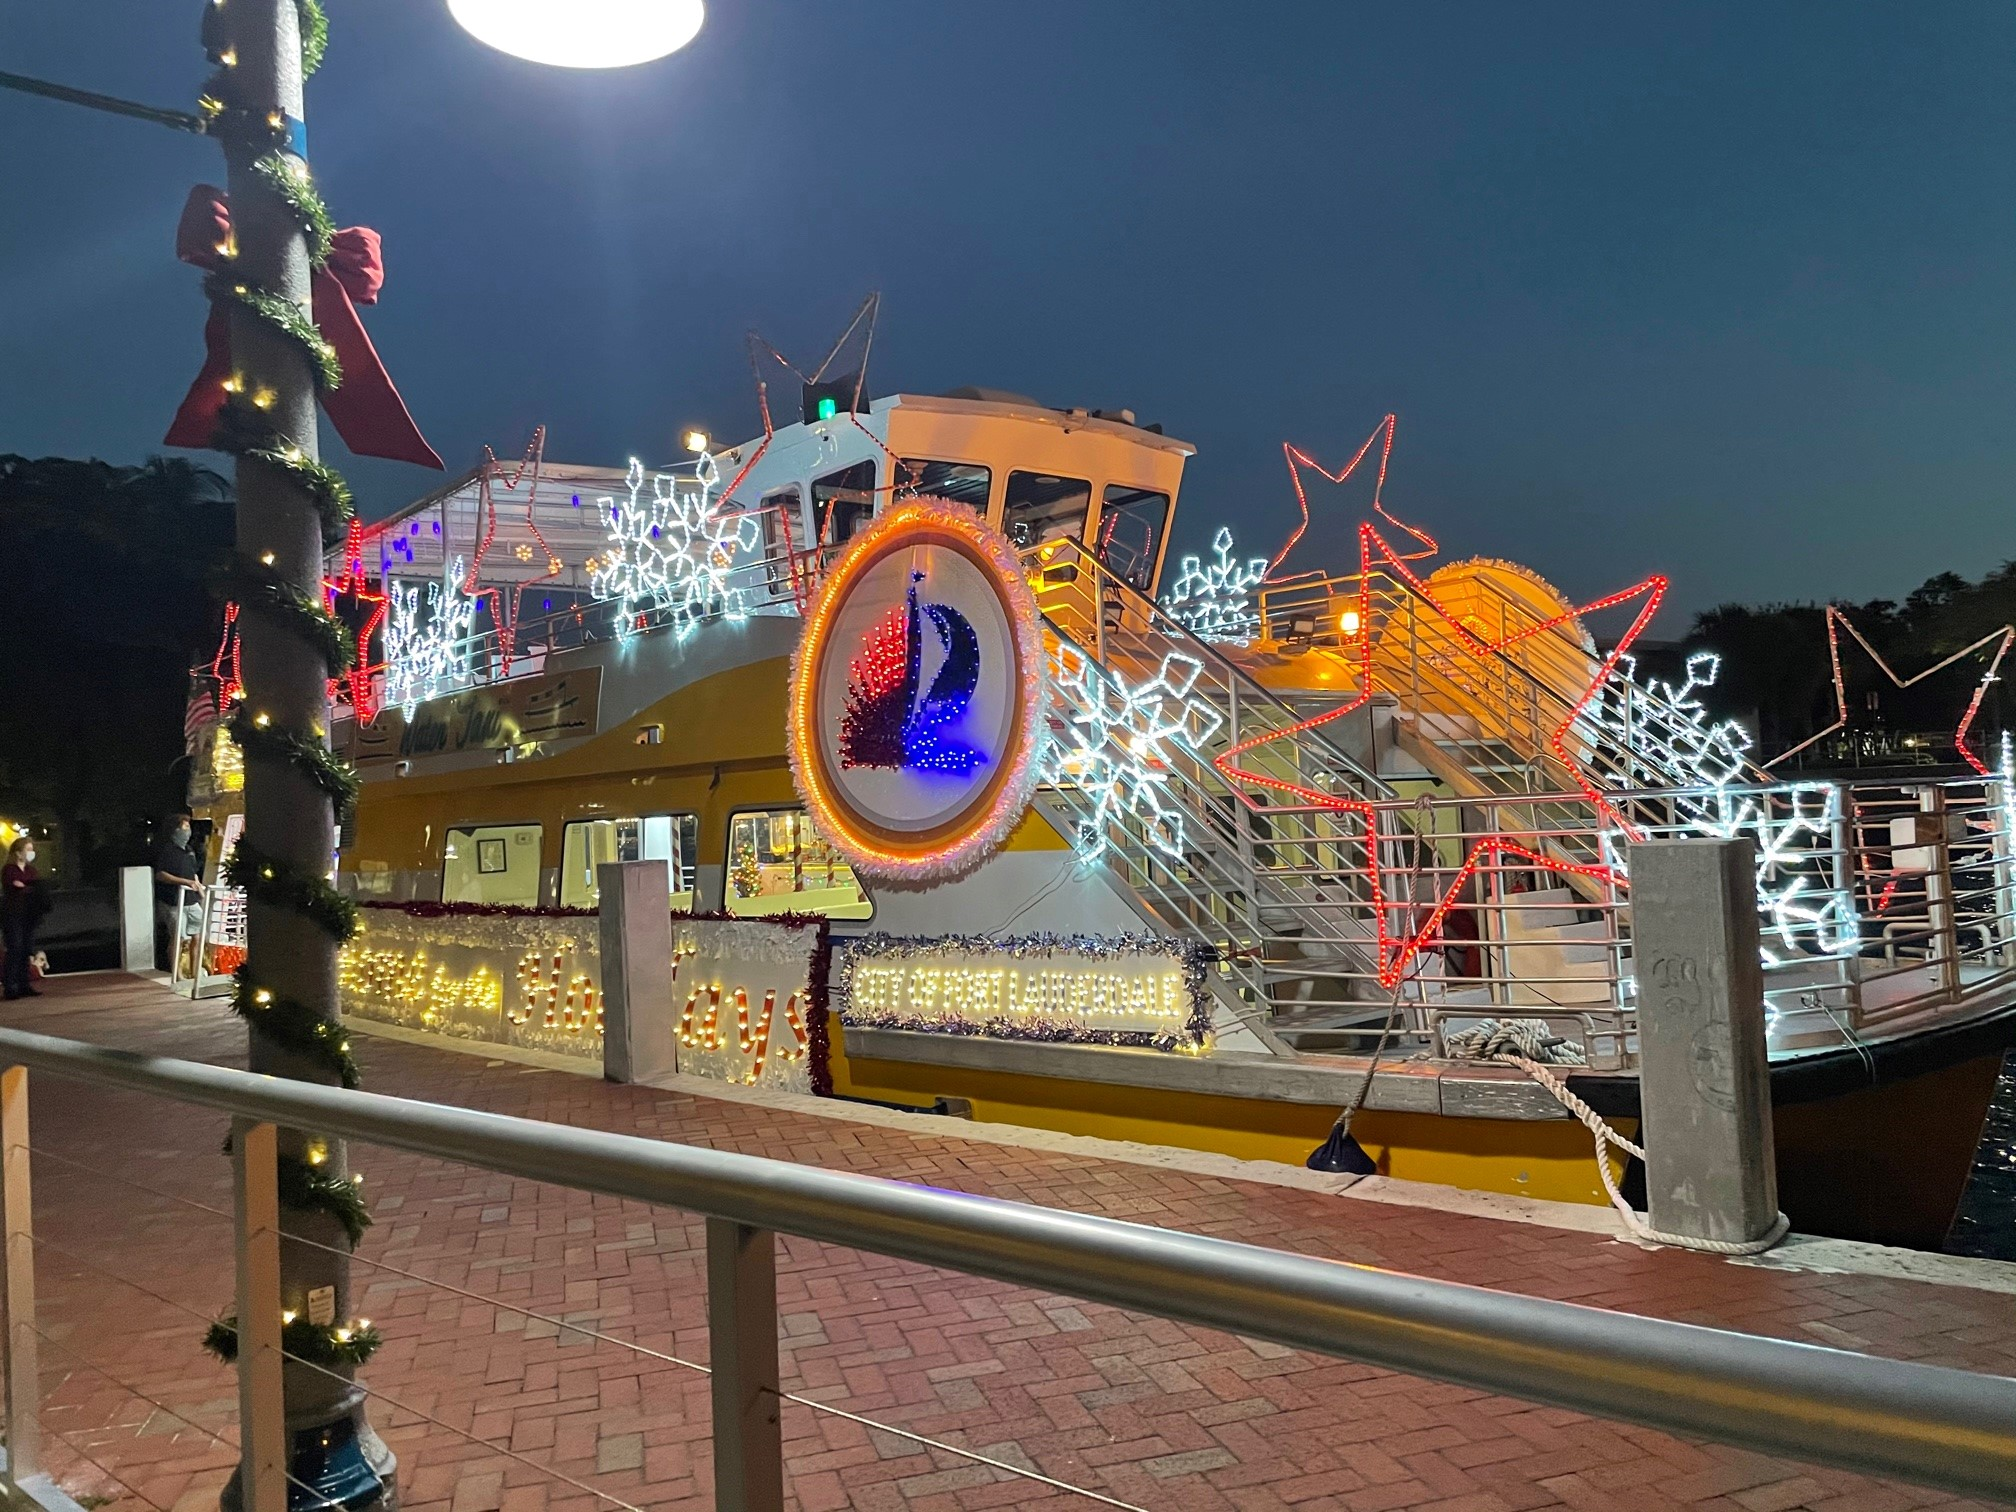 Fort Lauderdale Water Taxi decorated with Christmas lights